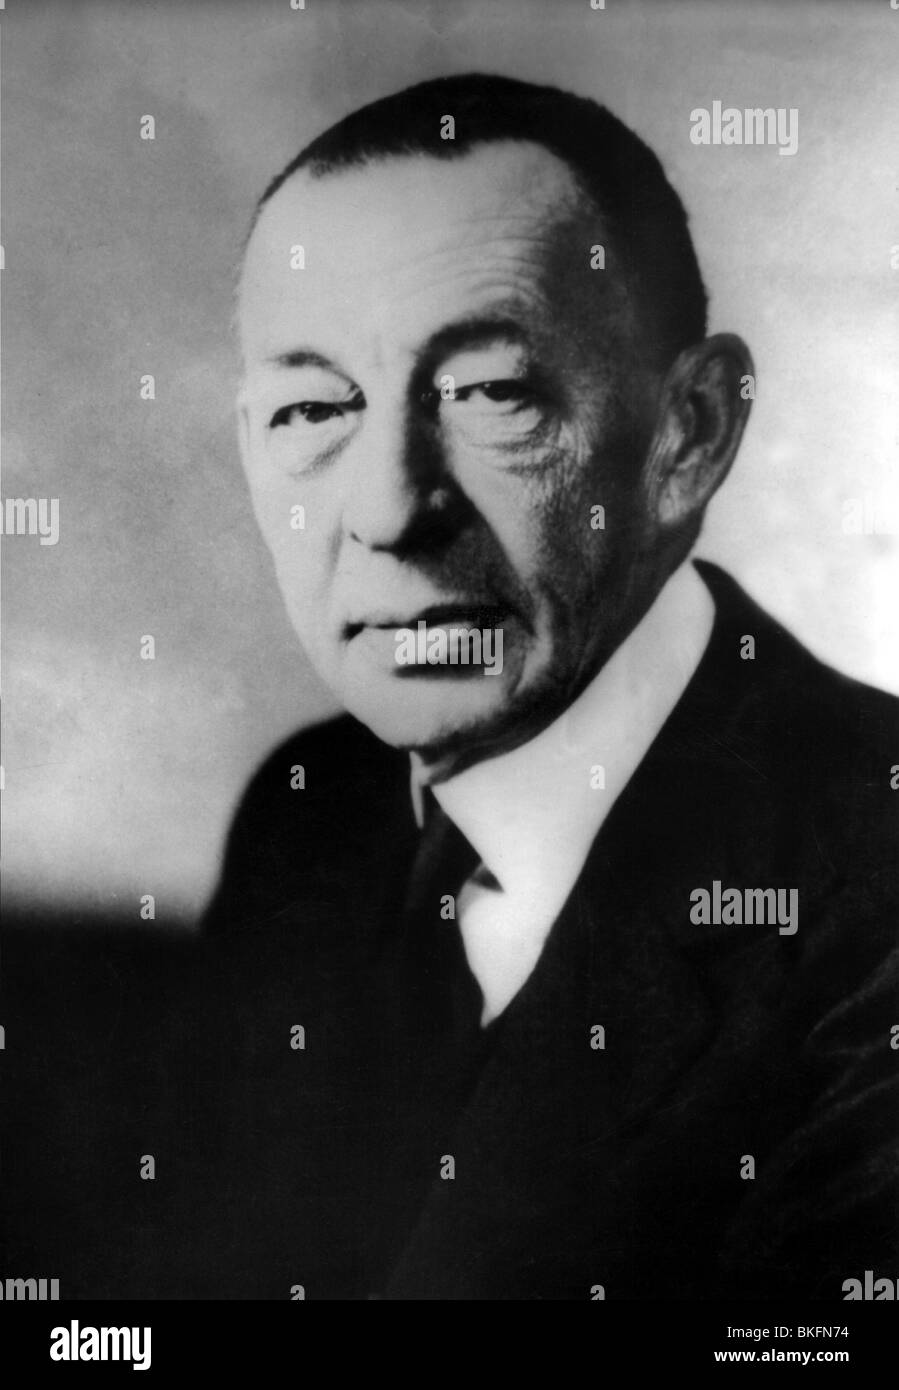 Rachmaninov, Sergei, 1.4.1873 - 28.3.1943, Russian composer, portrait, 1930s, Additional-Rights-Clearances-NA - Stock Image